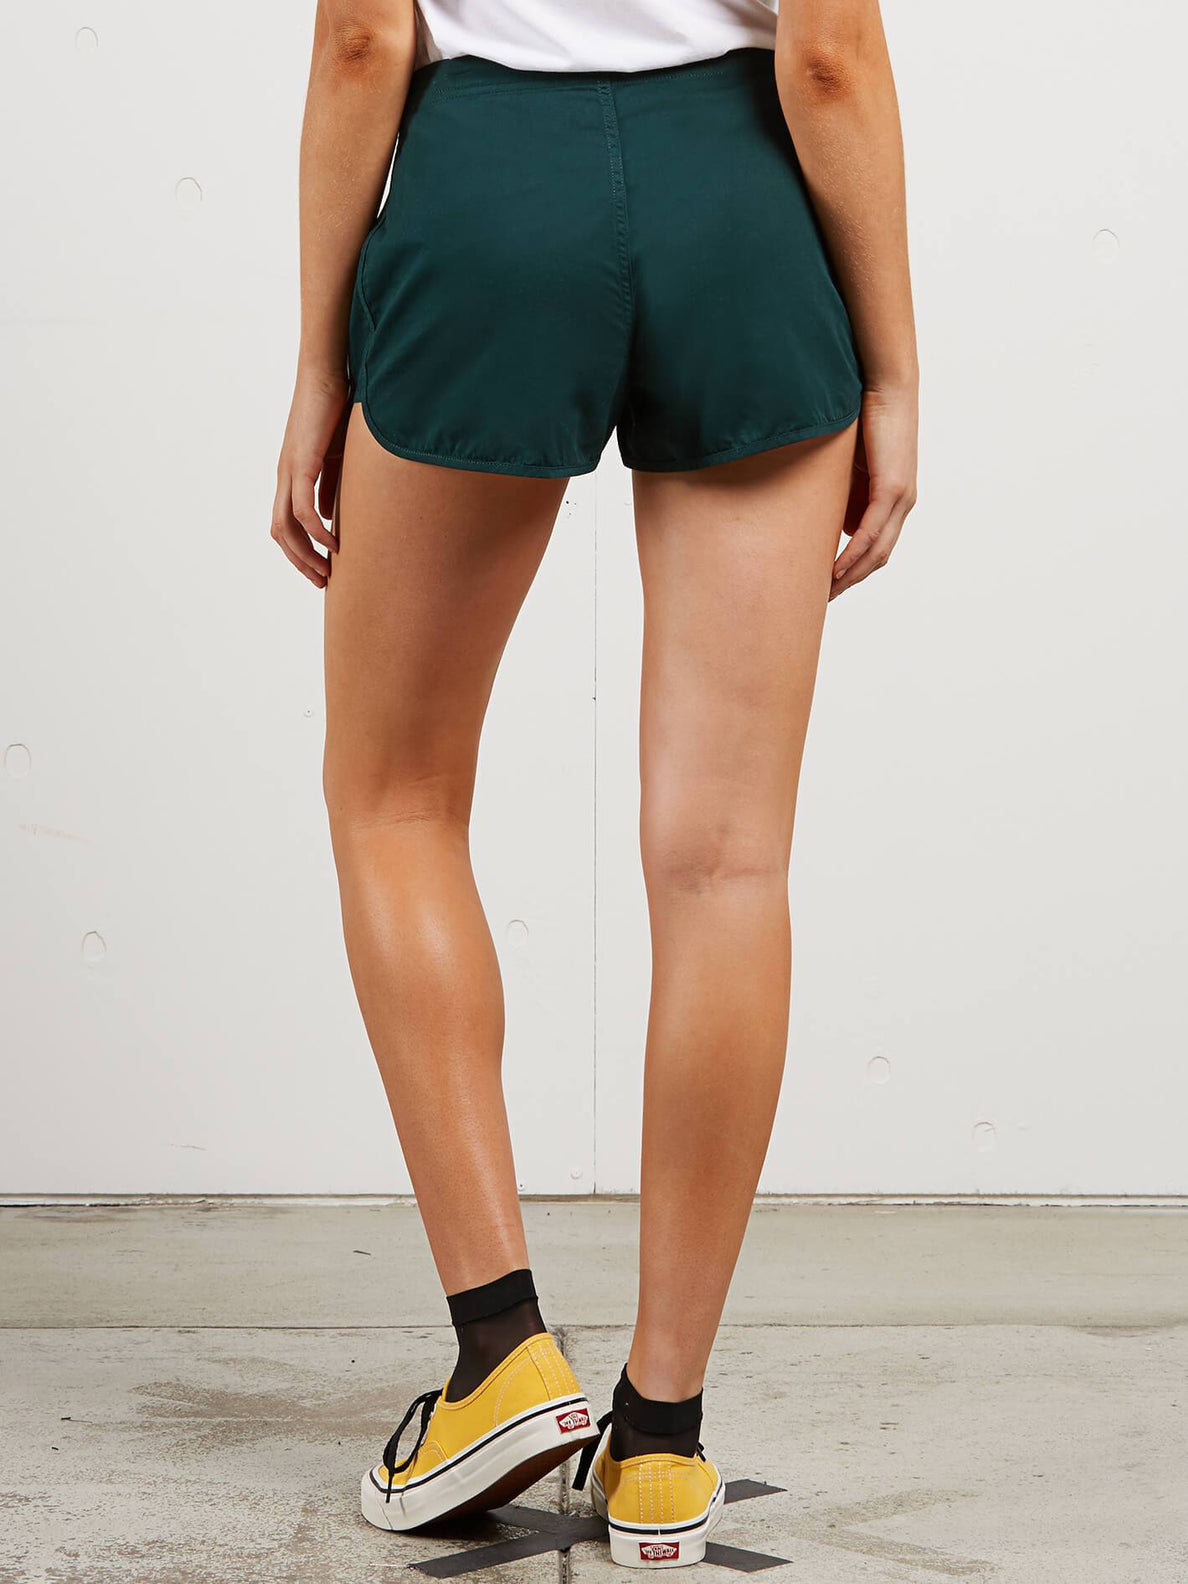 Stoney Shorts In Evergreen, Back View